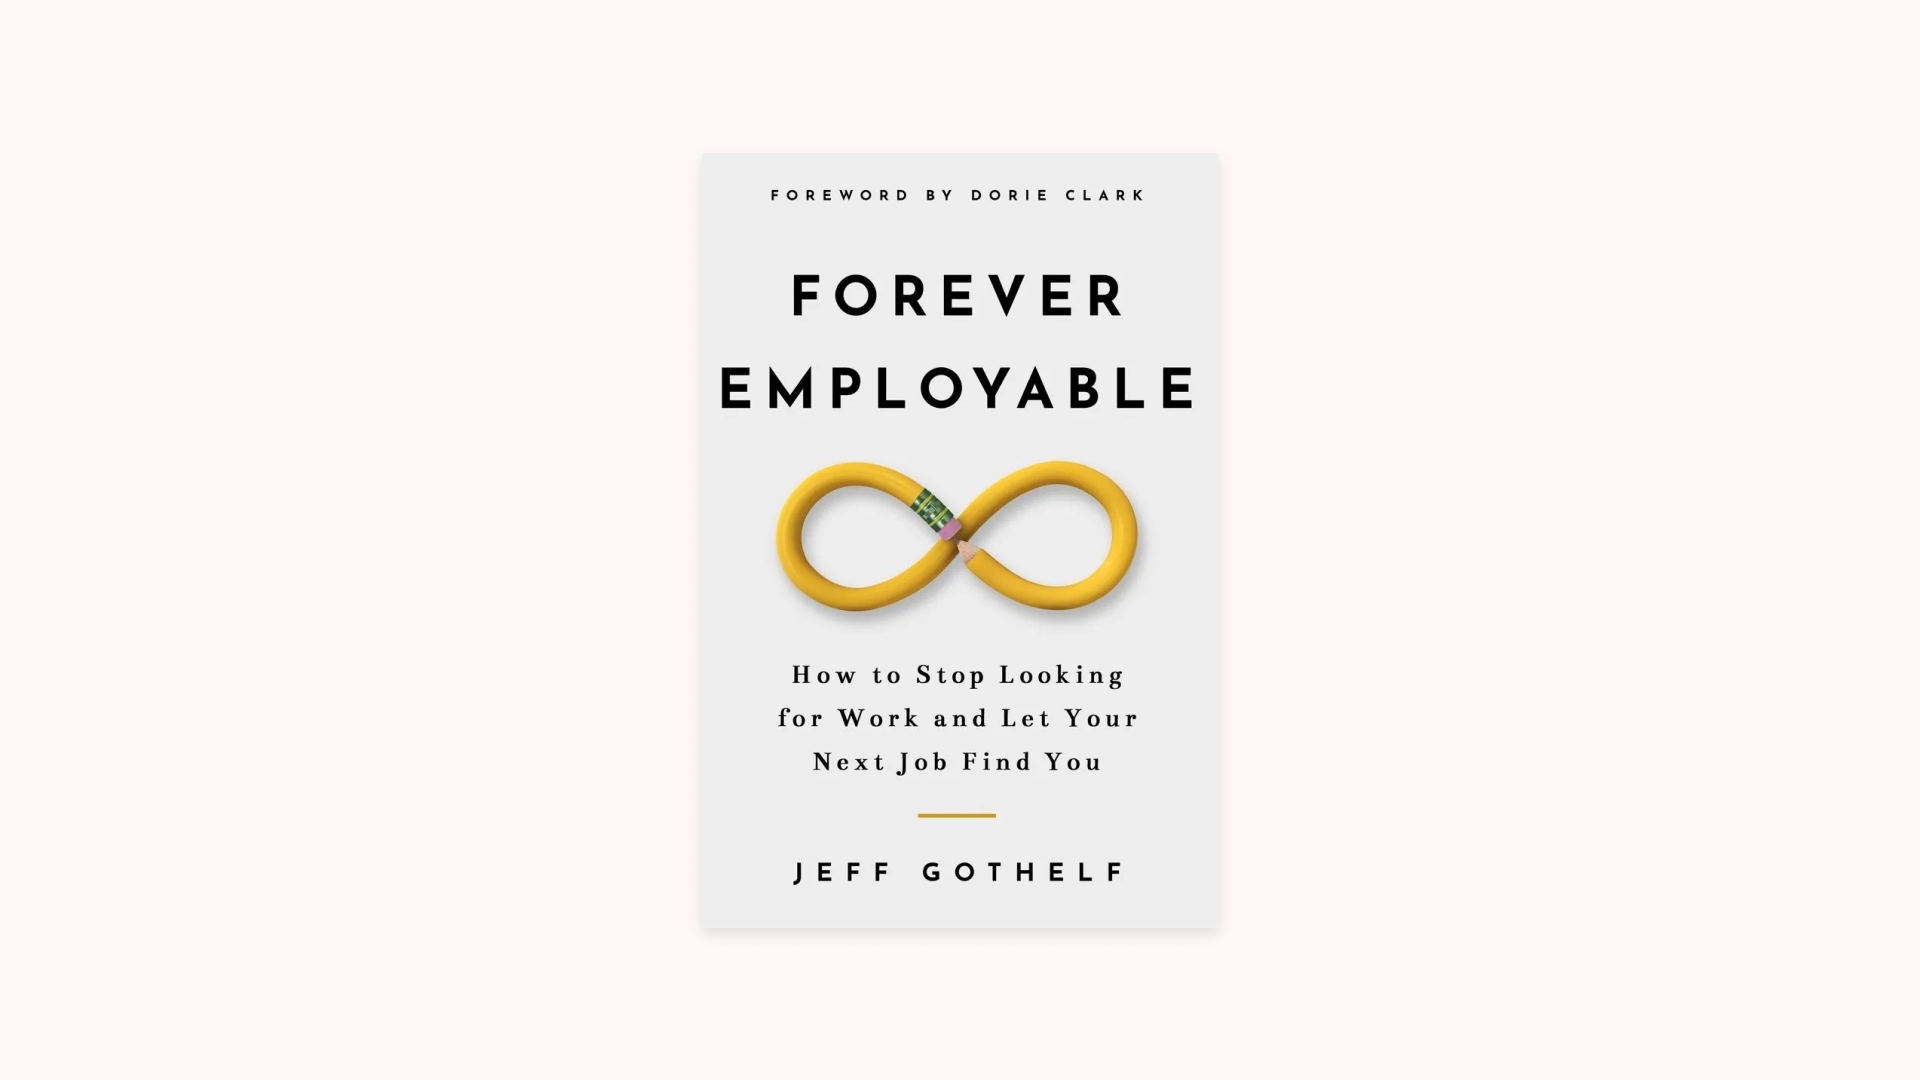 The front cover of the book Forever Employable by Jeff Gothelf